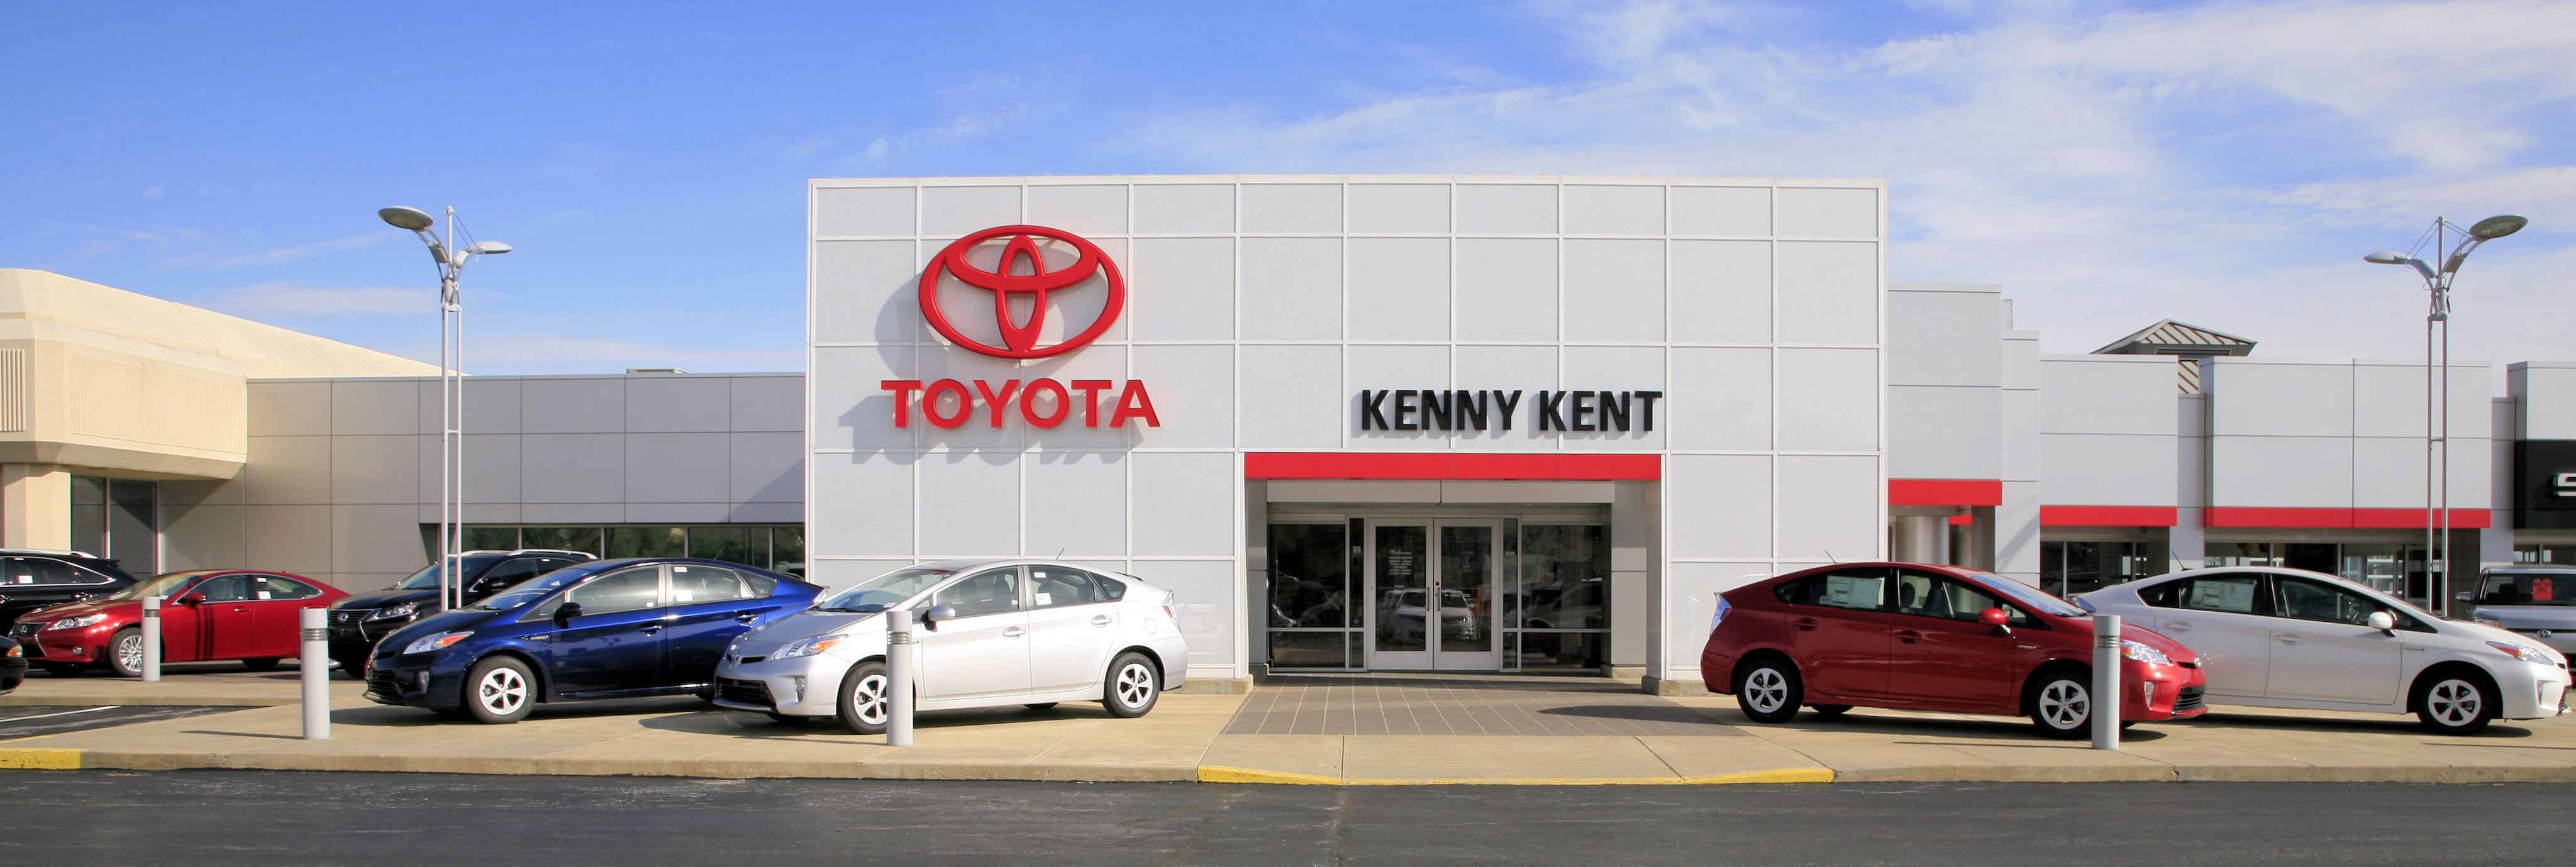 Kenny Kent Toyota Evansville IN Toyota Dealership